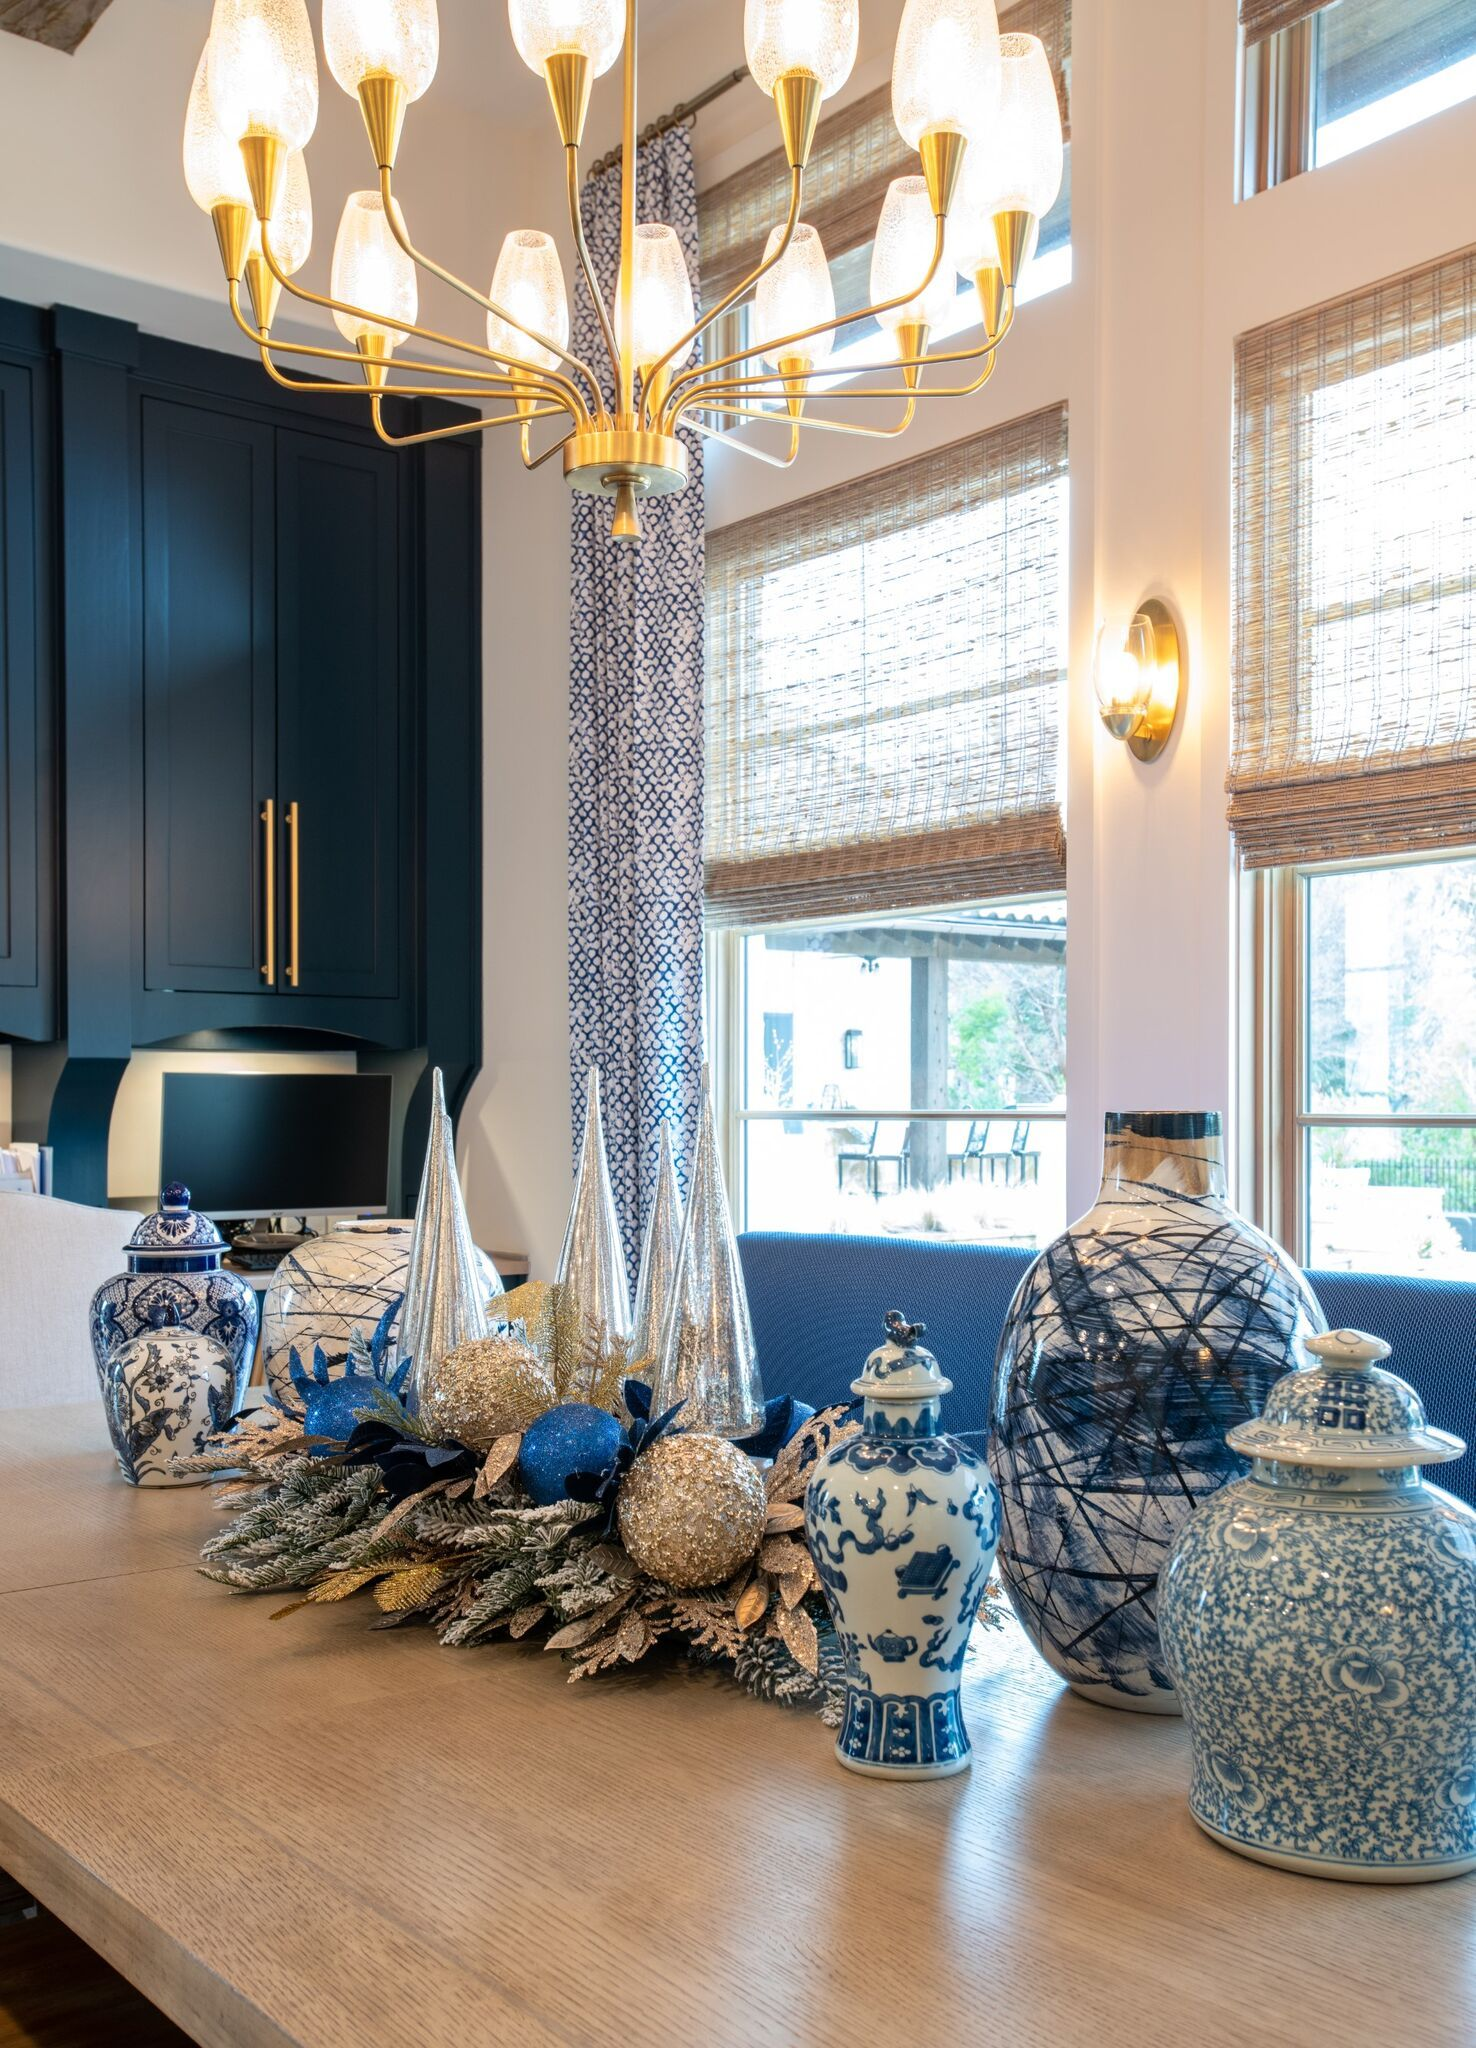 Baker Design Group Is A Full Service Interior And Exterior